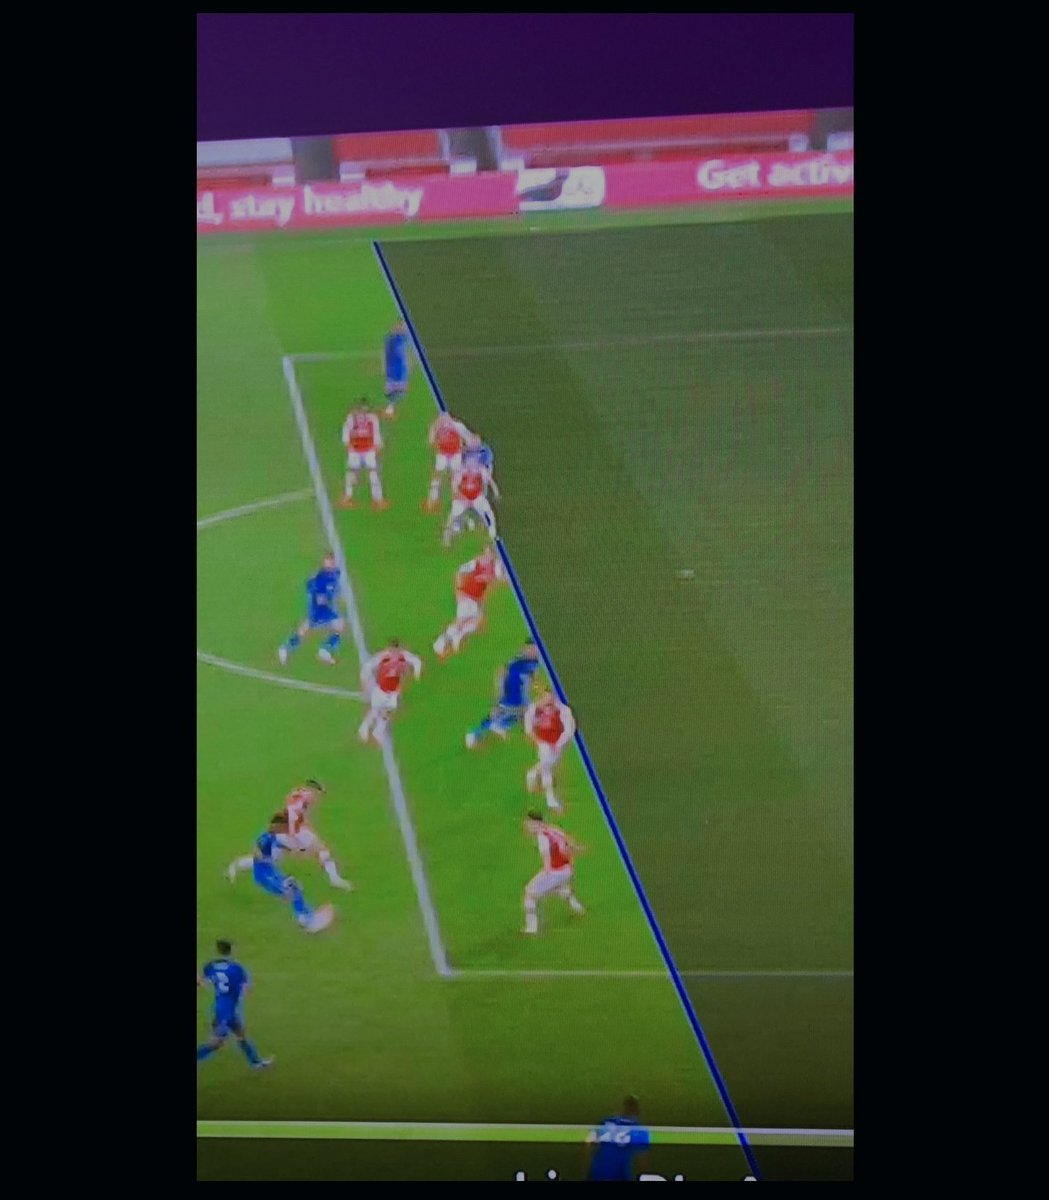 In all seriousness though how has this not been spotted? Vardys whole shoulder is clearly offside. So fucking frustrating having to watch these abysmal officials week in, week out.